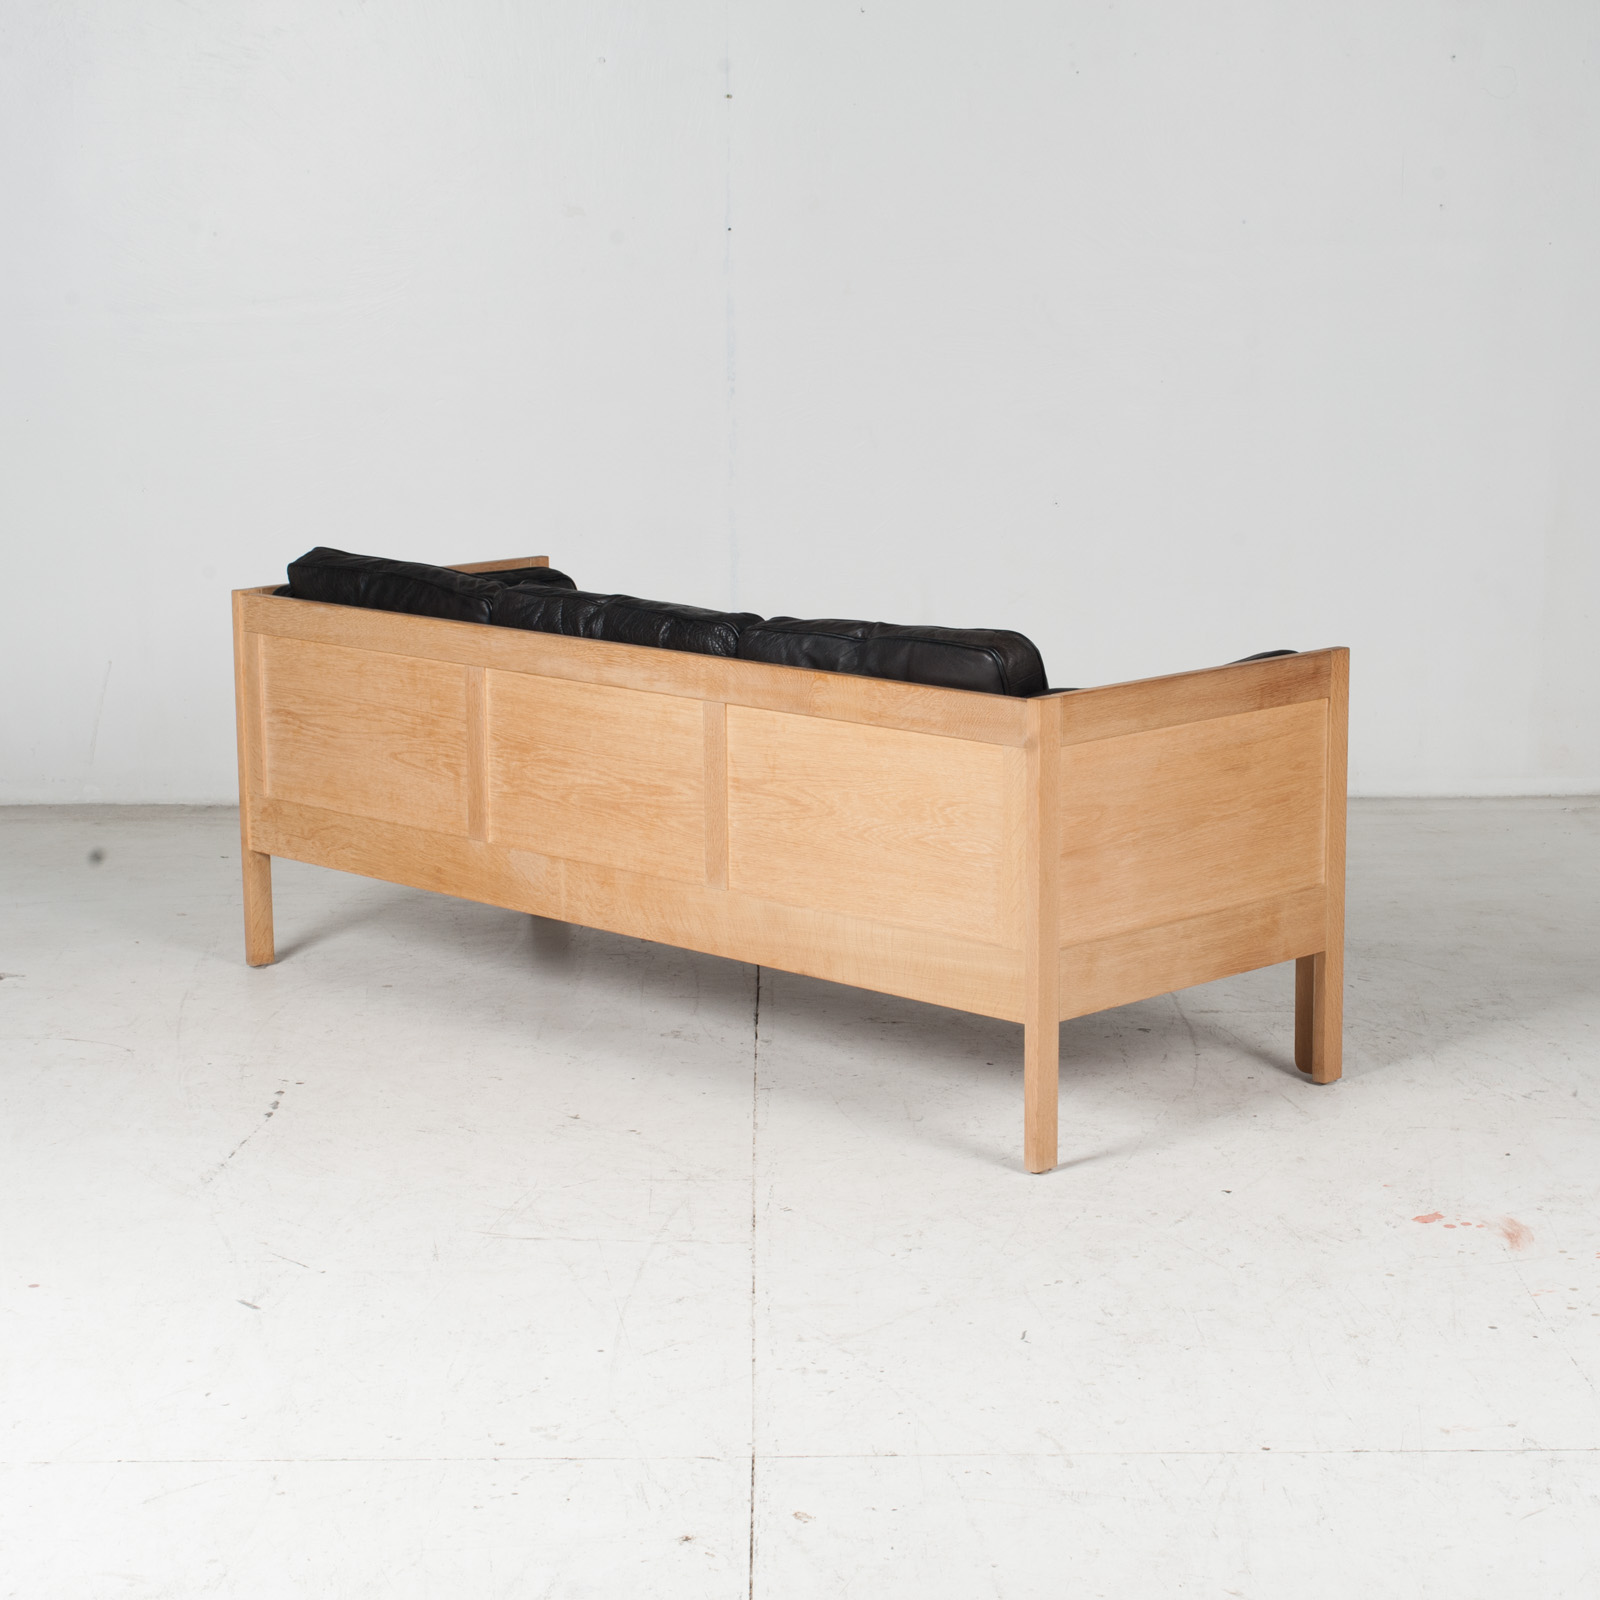 3 Seat Sofa By Borge Mogensen For Frederica In Black Leather And Oak, 1960s, Denmark 10